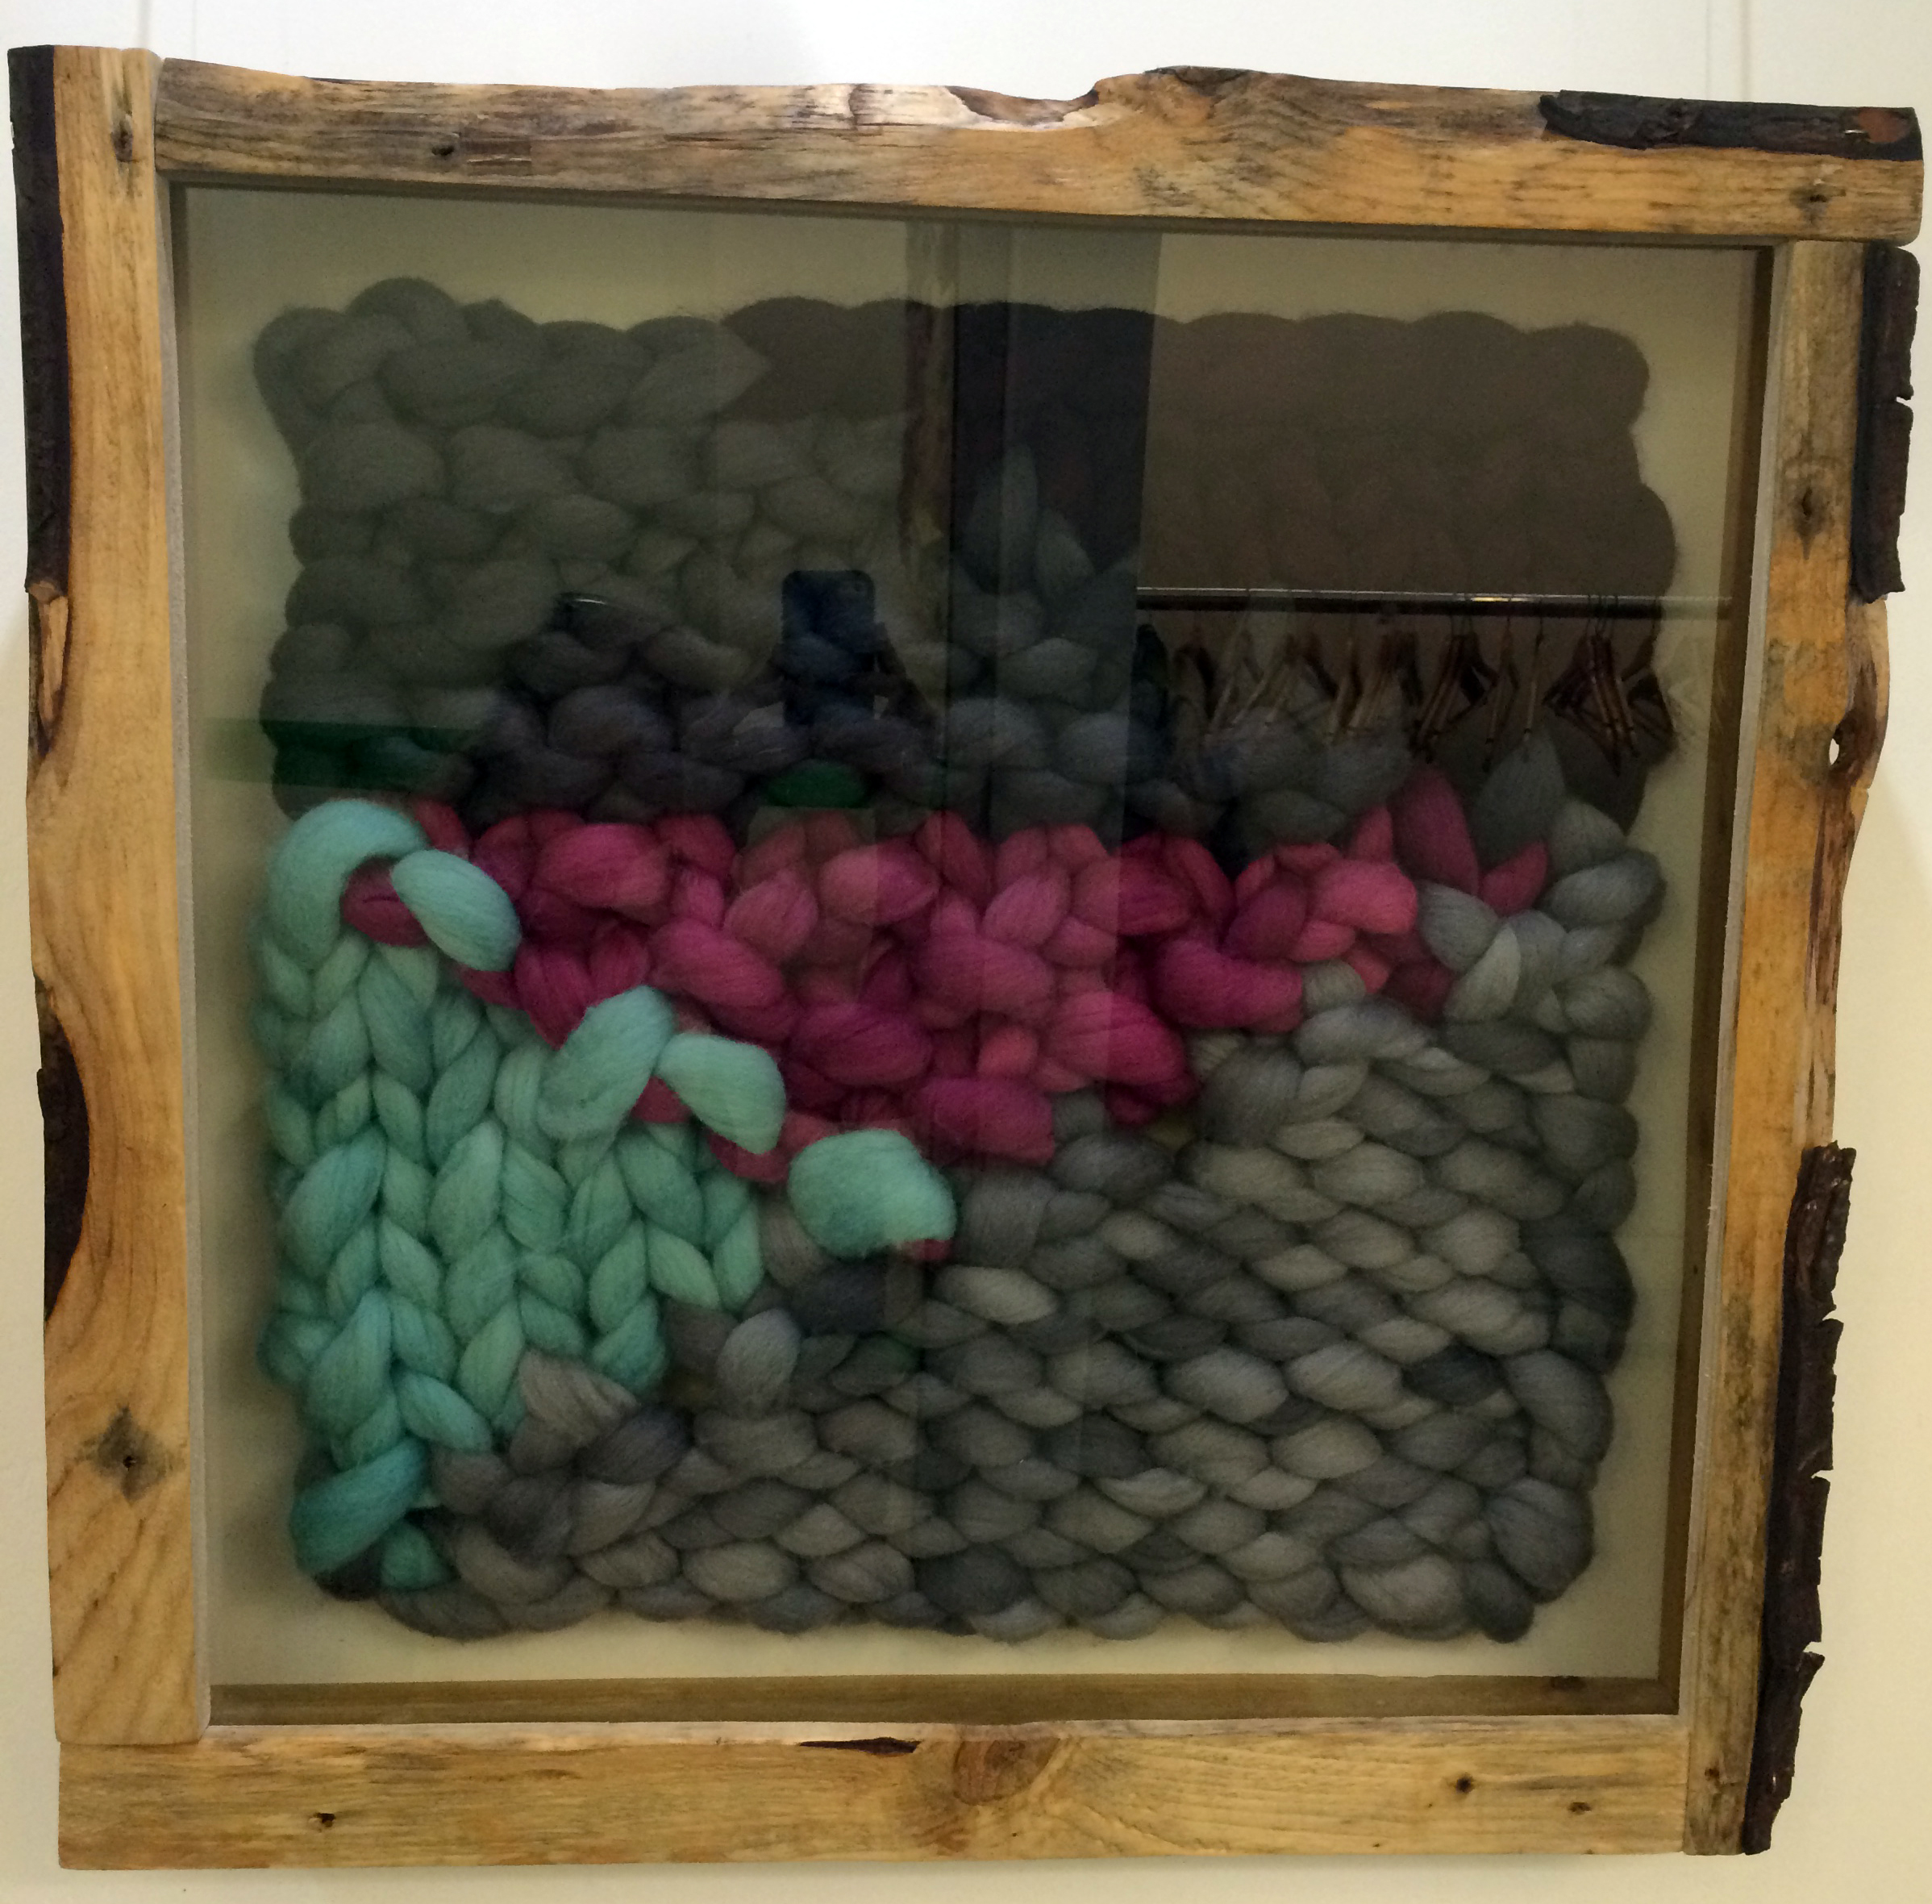 Framed Knit #1 by Sophie Adamson